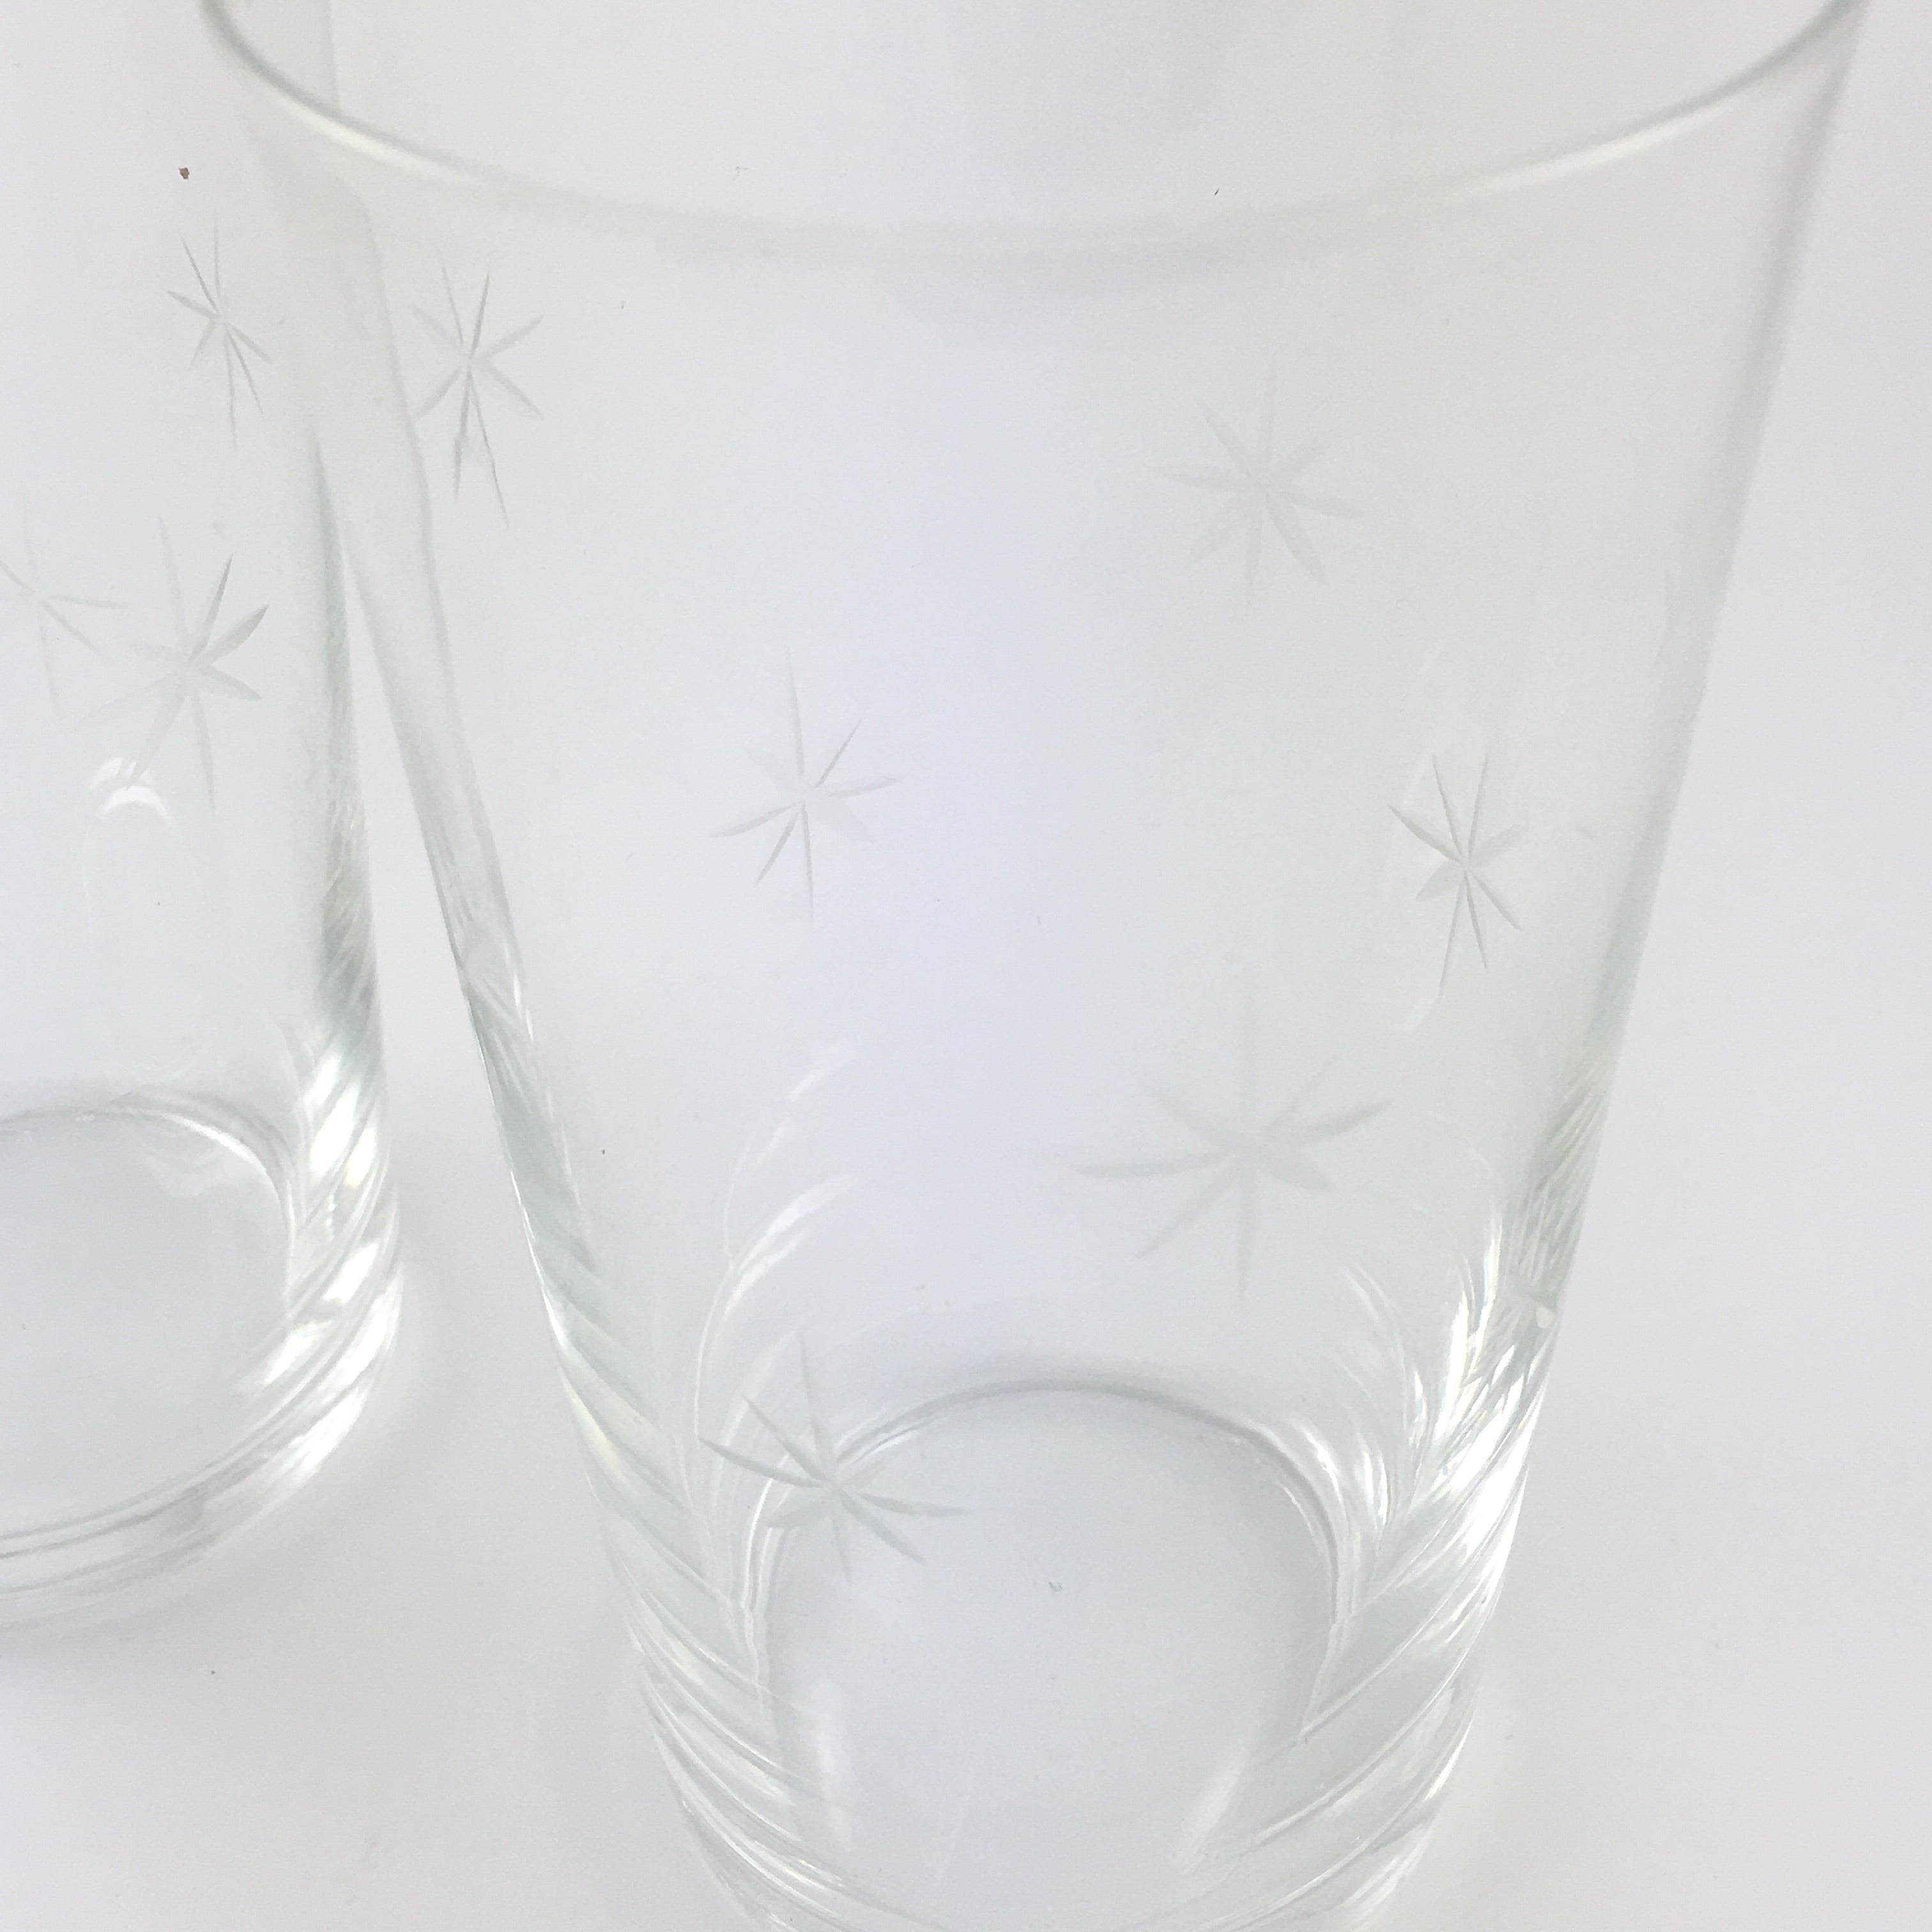 Etched Star Glasses